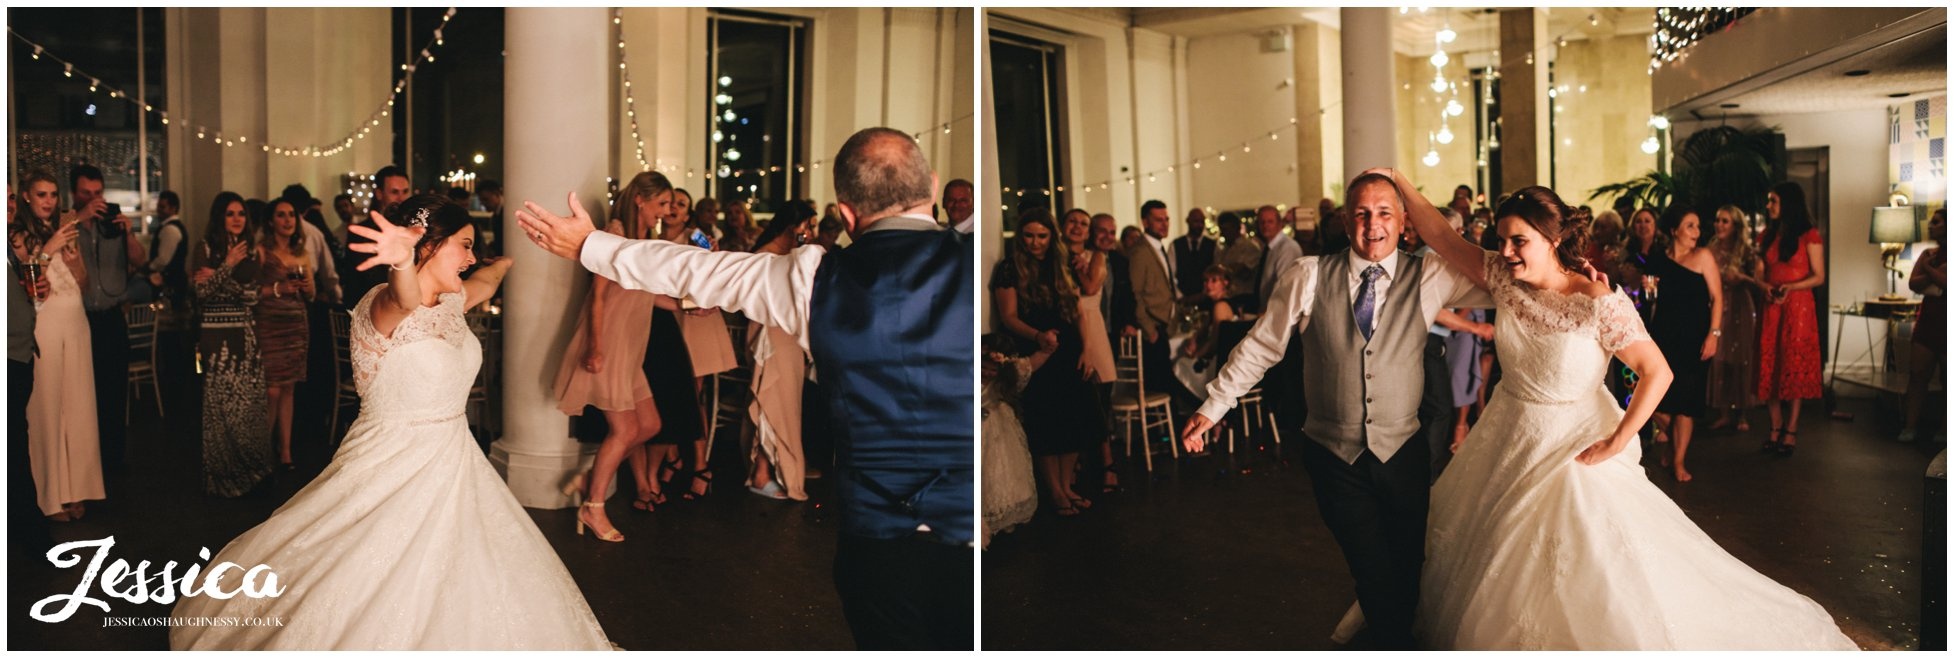 father and daughter dance at oh me oh my, liverpool